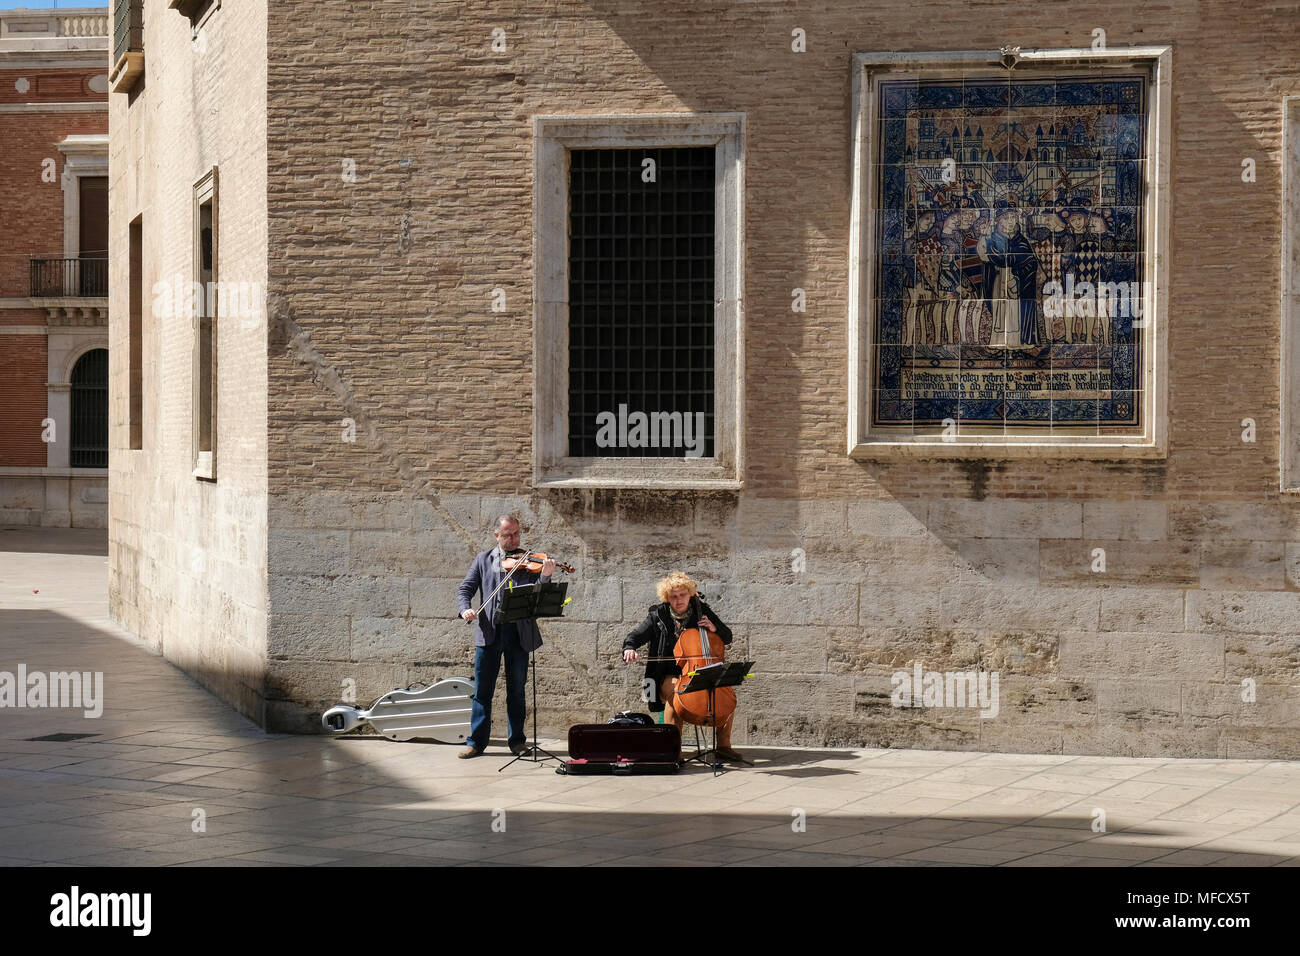 Street performers playing music in Plaza Decimo Junio Bruto, part of the old historical centre, North Ciutat Vella district, Valencia, Spain. Stock Photo